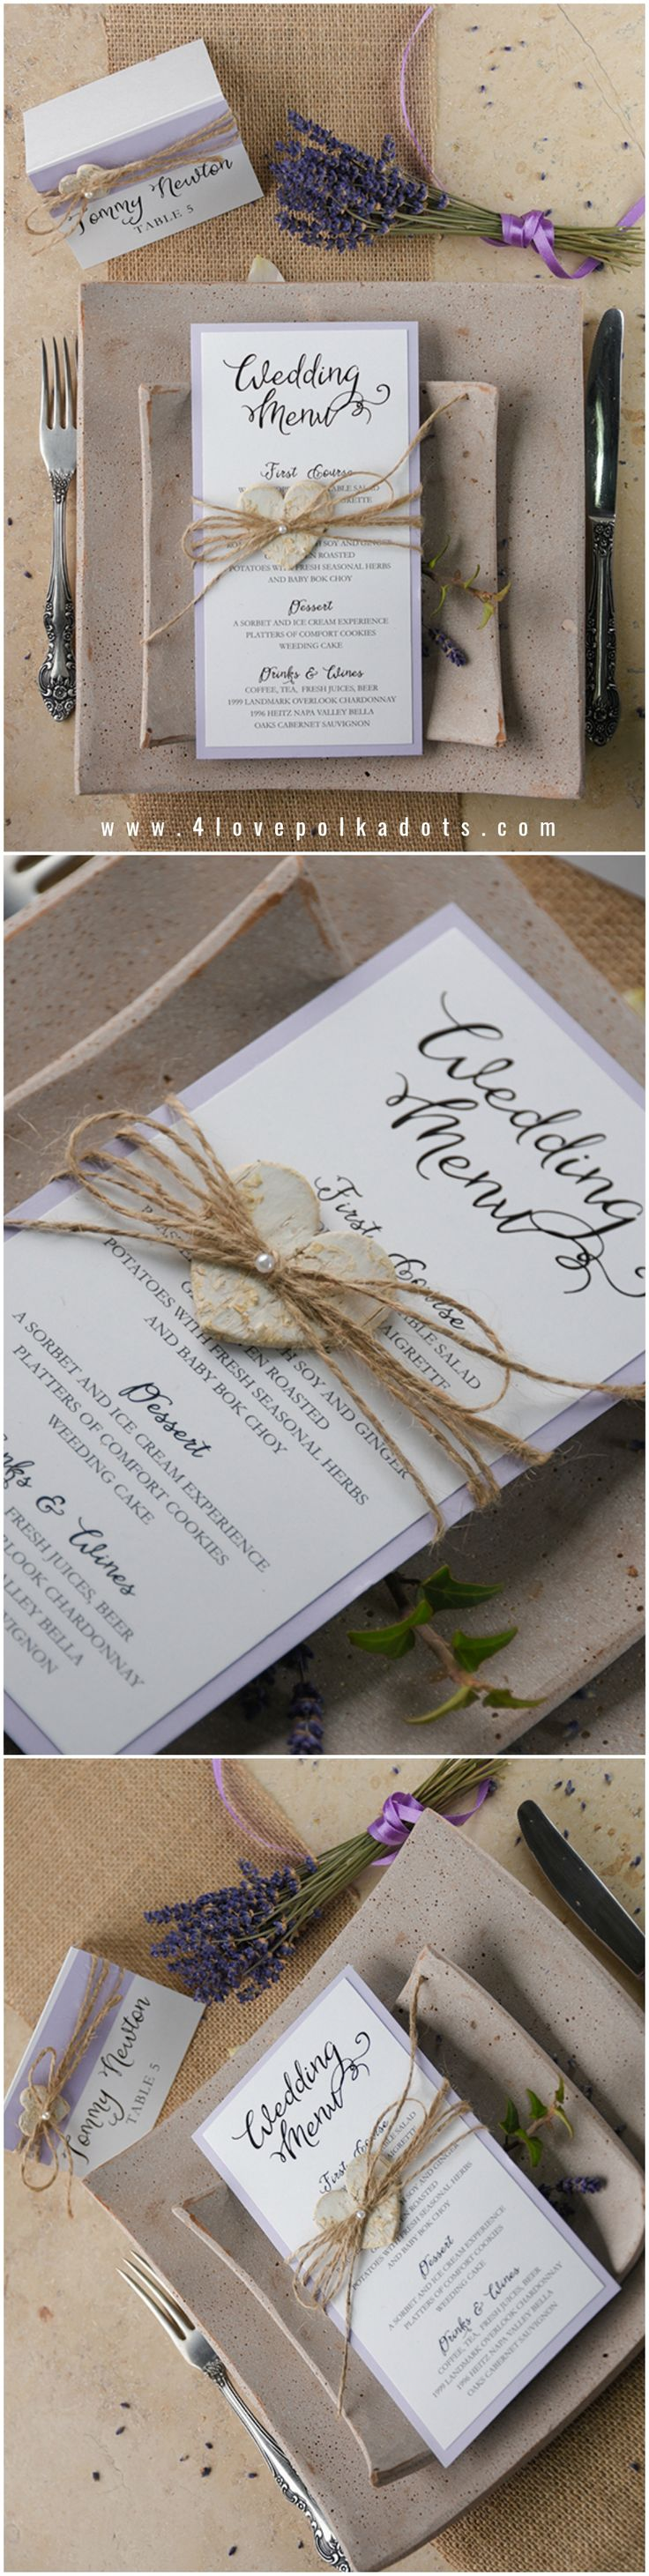 Lavender Wedding Rustic Menu with birch bark heart tag #rustic #cottage #provence #weddingideas #lavender #menu #stationery #purple #lilac